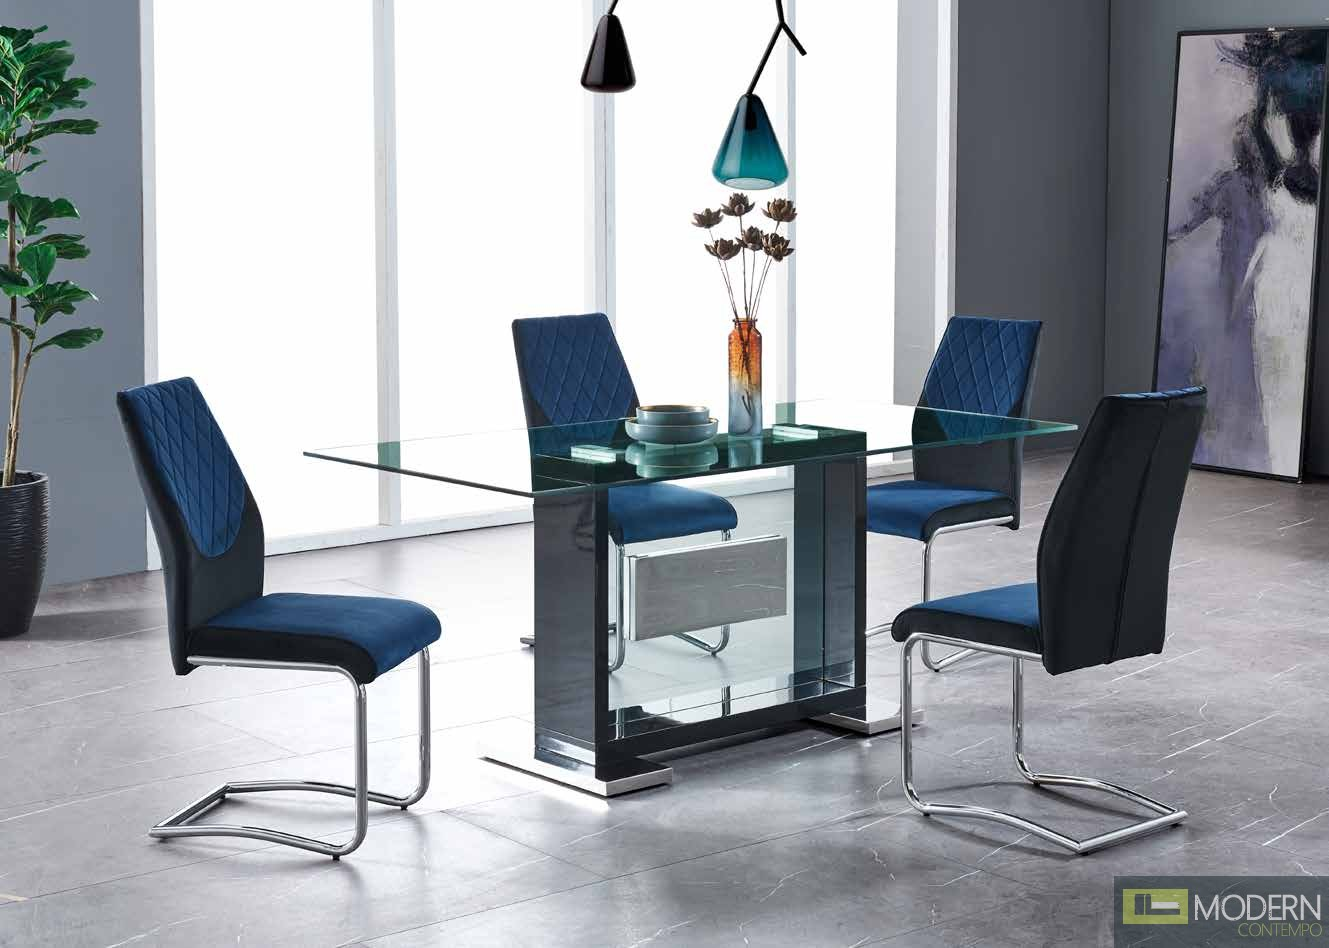 5Pc Dining Table Rectangular Base and Clear Glass Top, Black Frame with Velvet Blue and chrome chairs